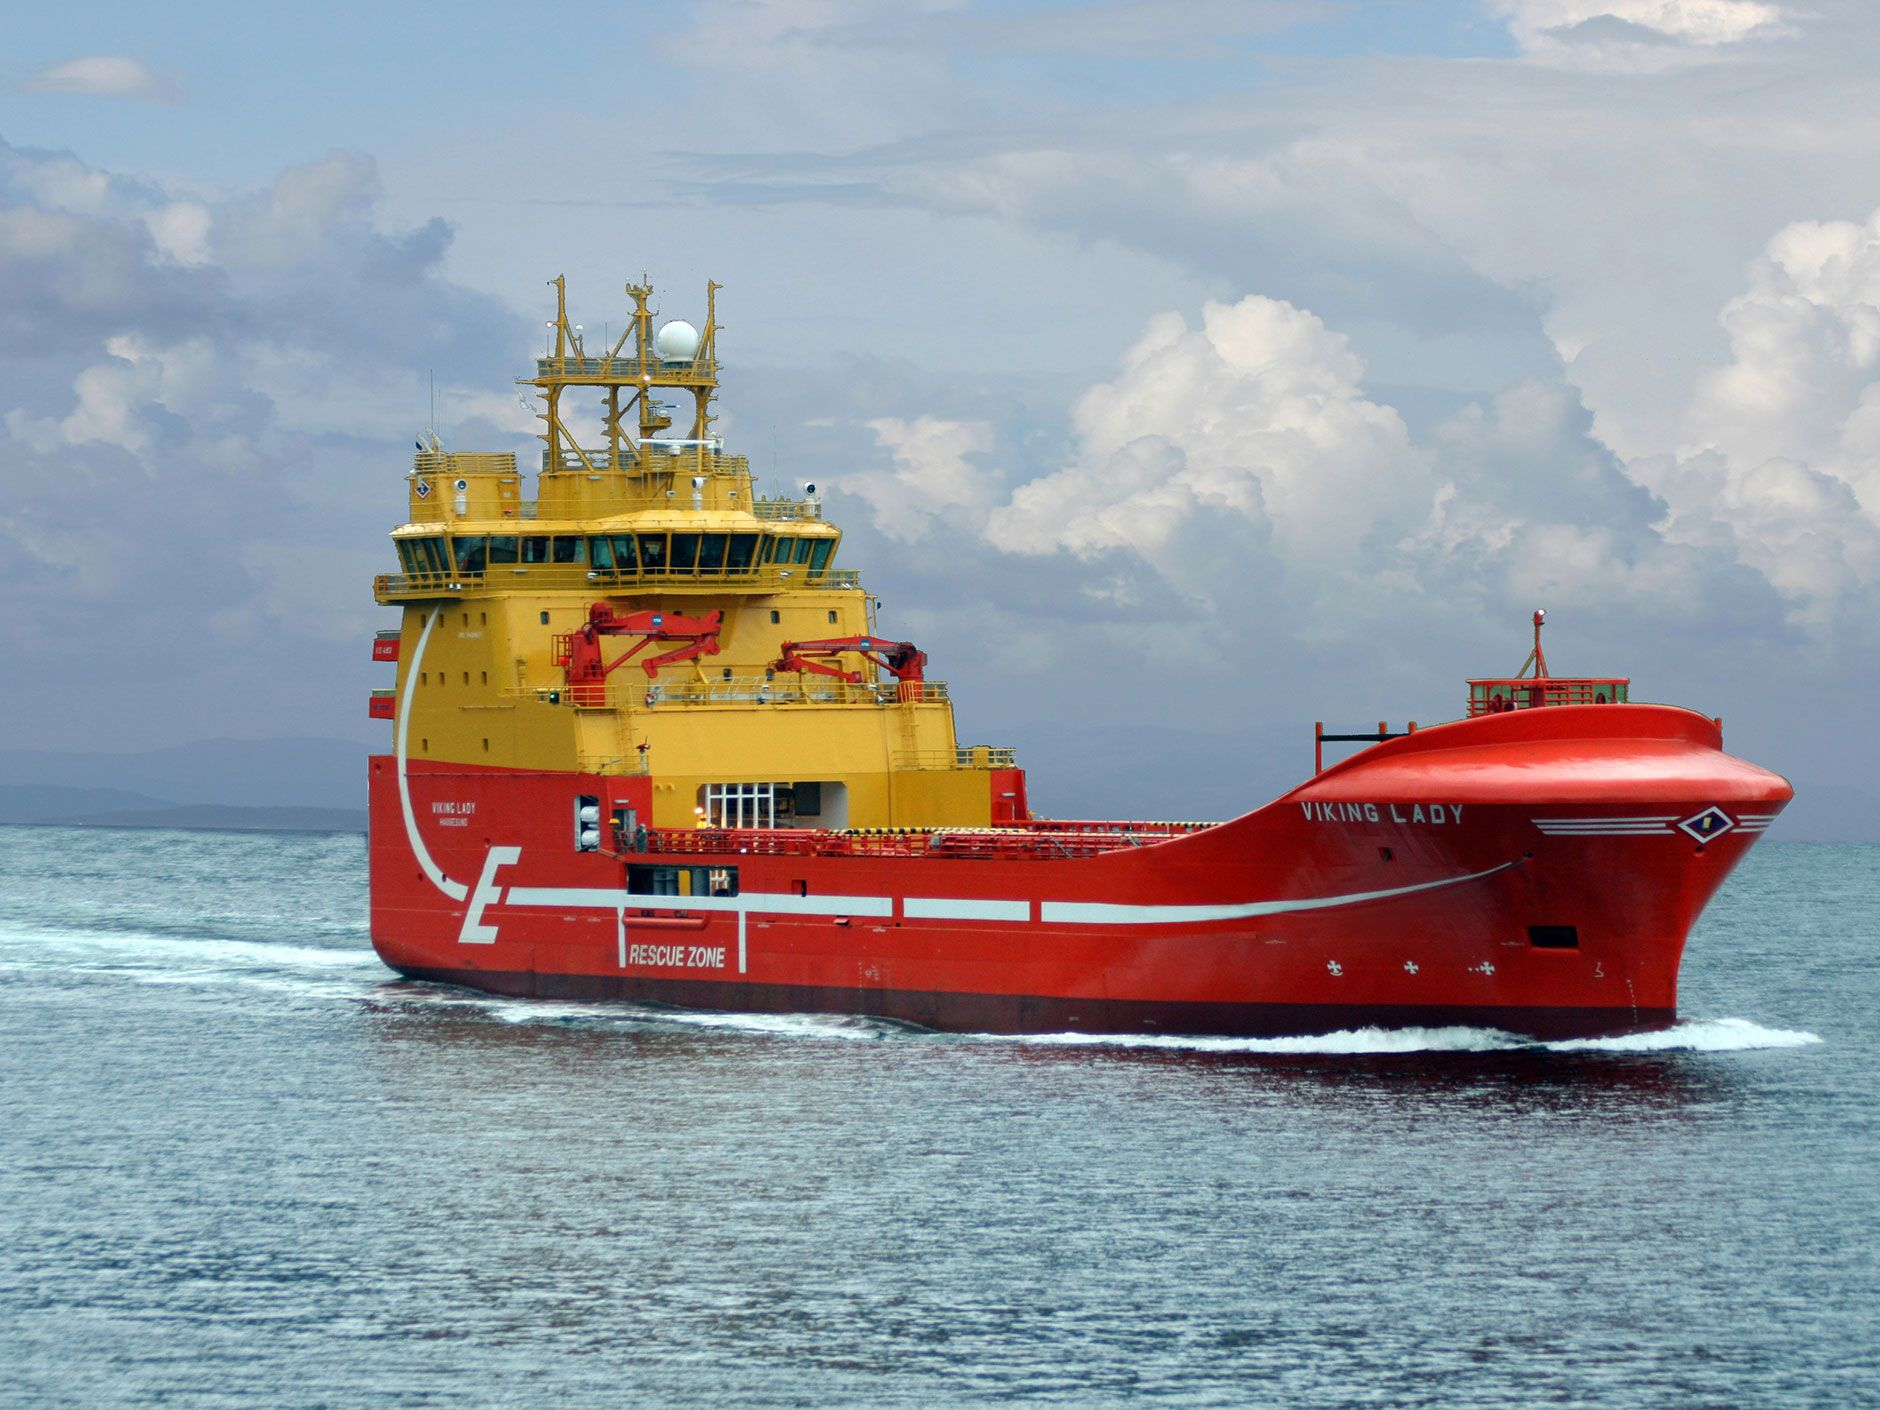 The <em>Viking Lady</em> is powered by a molten carbonate fuel cell and transports supplies to offshore rigs.